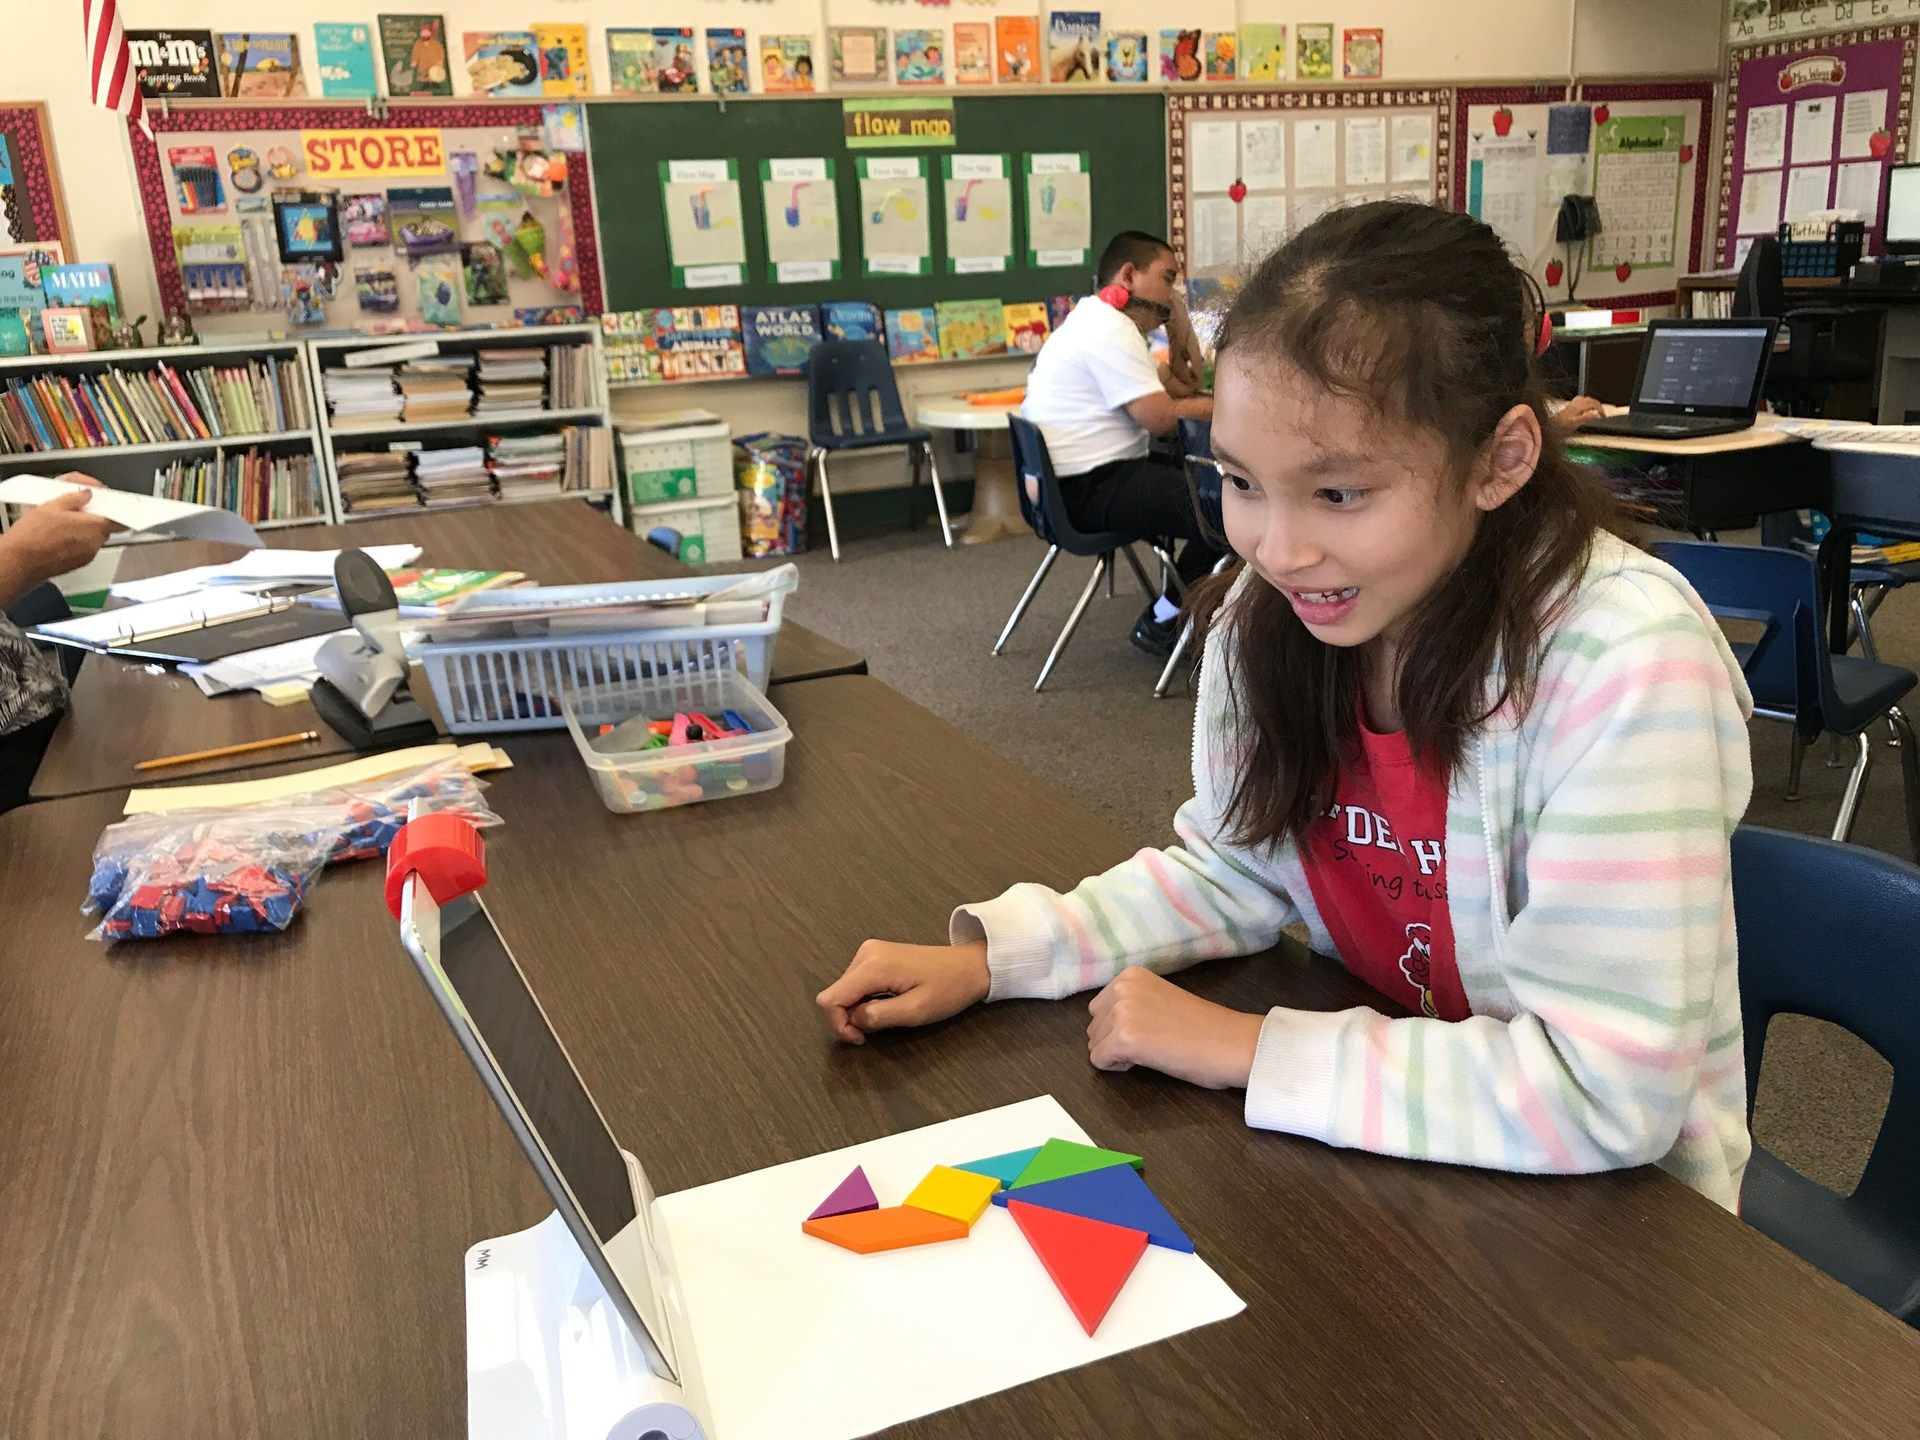 Osmo Tangram on iPads